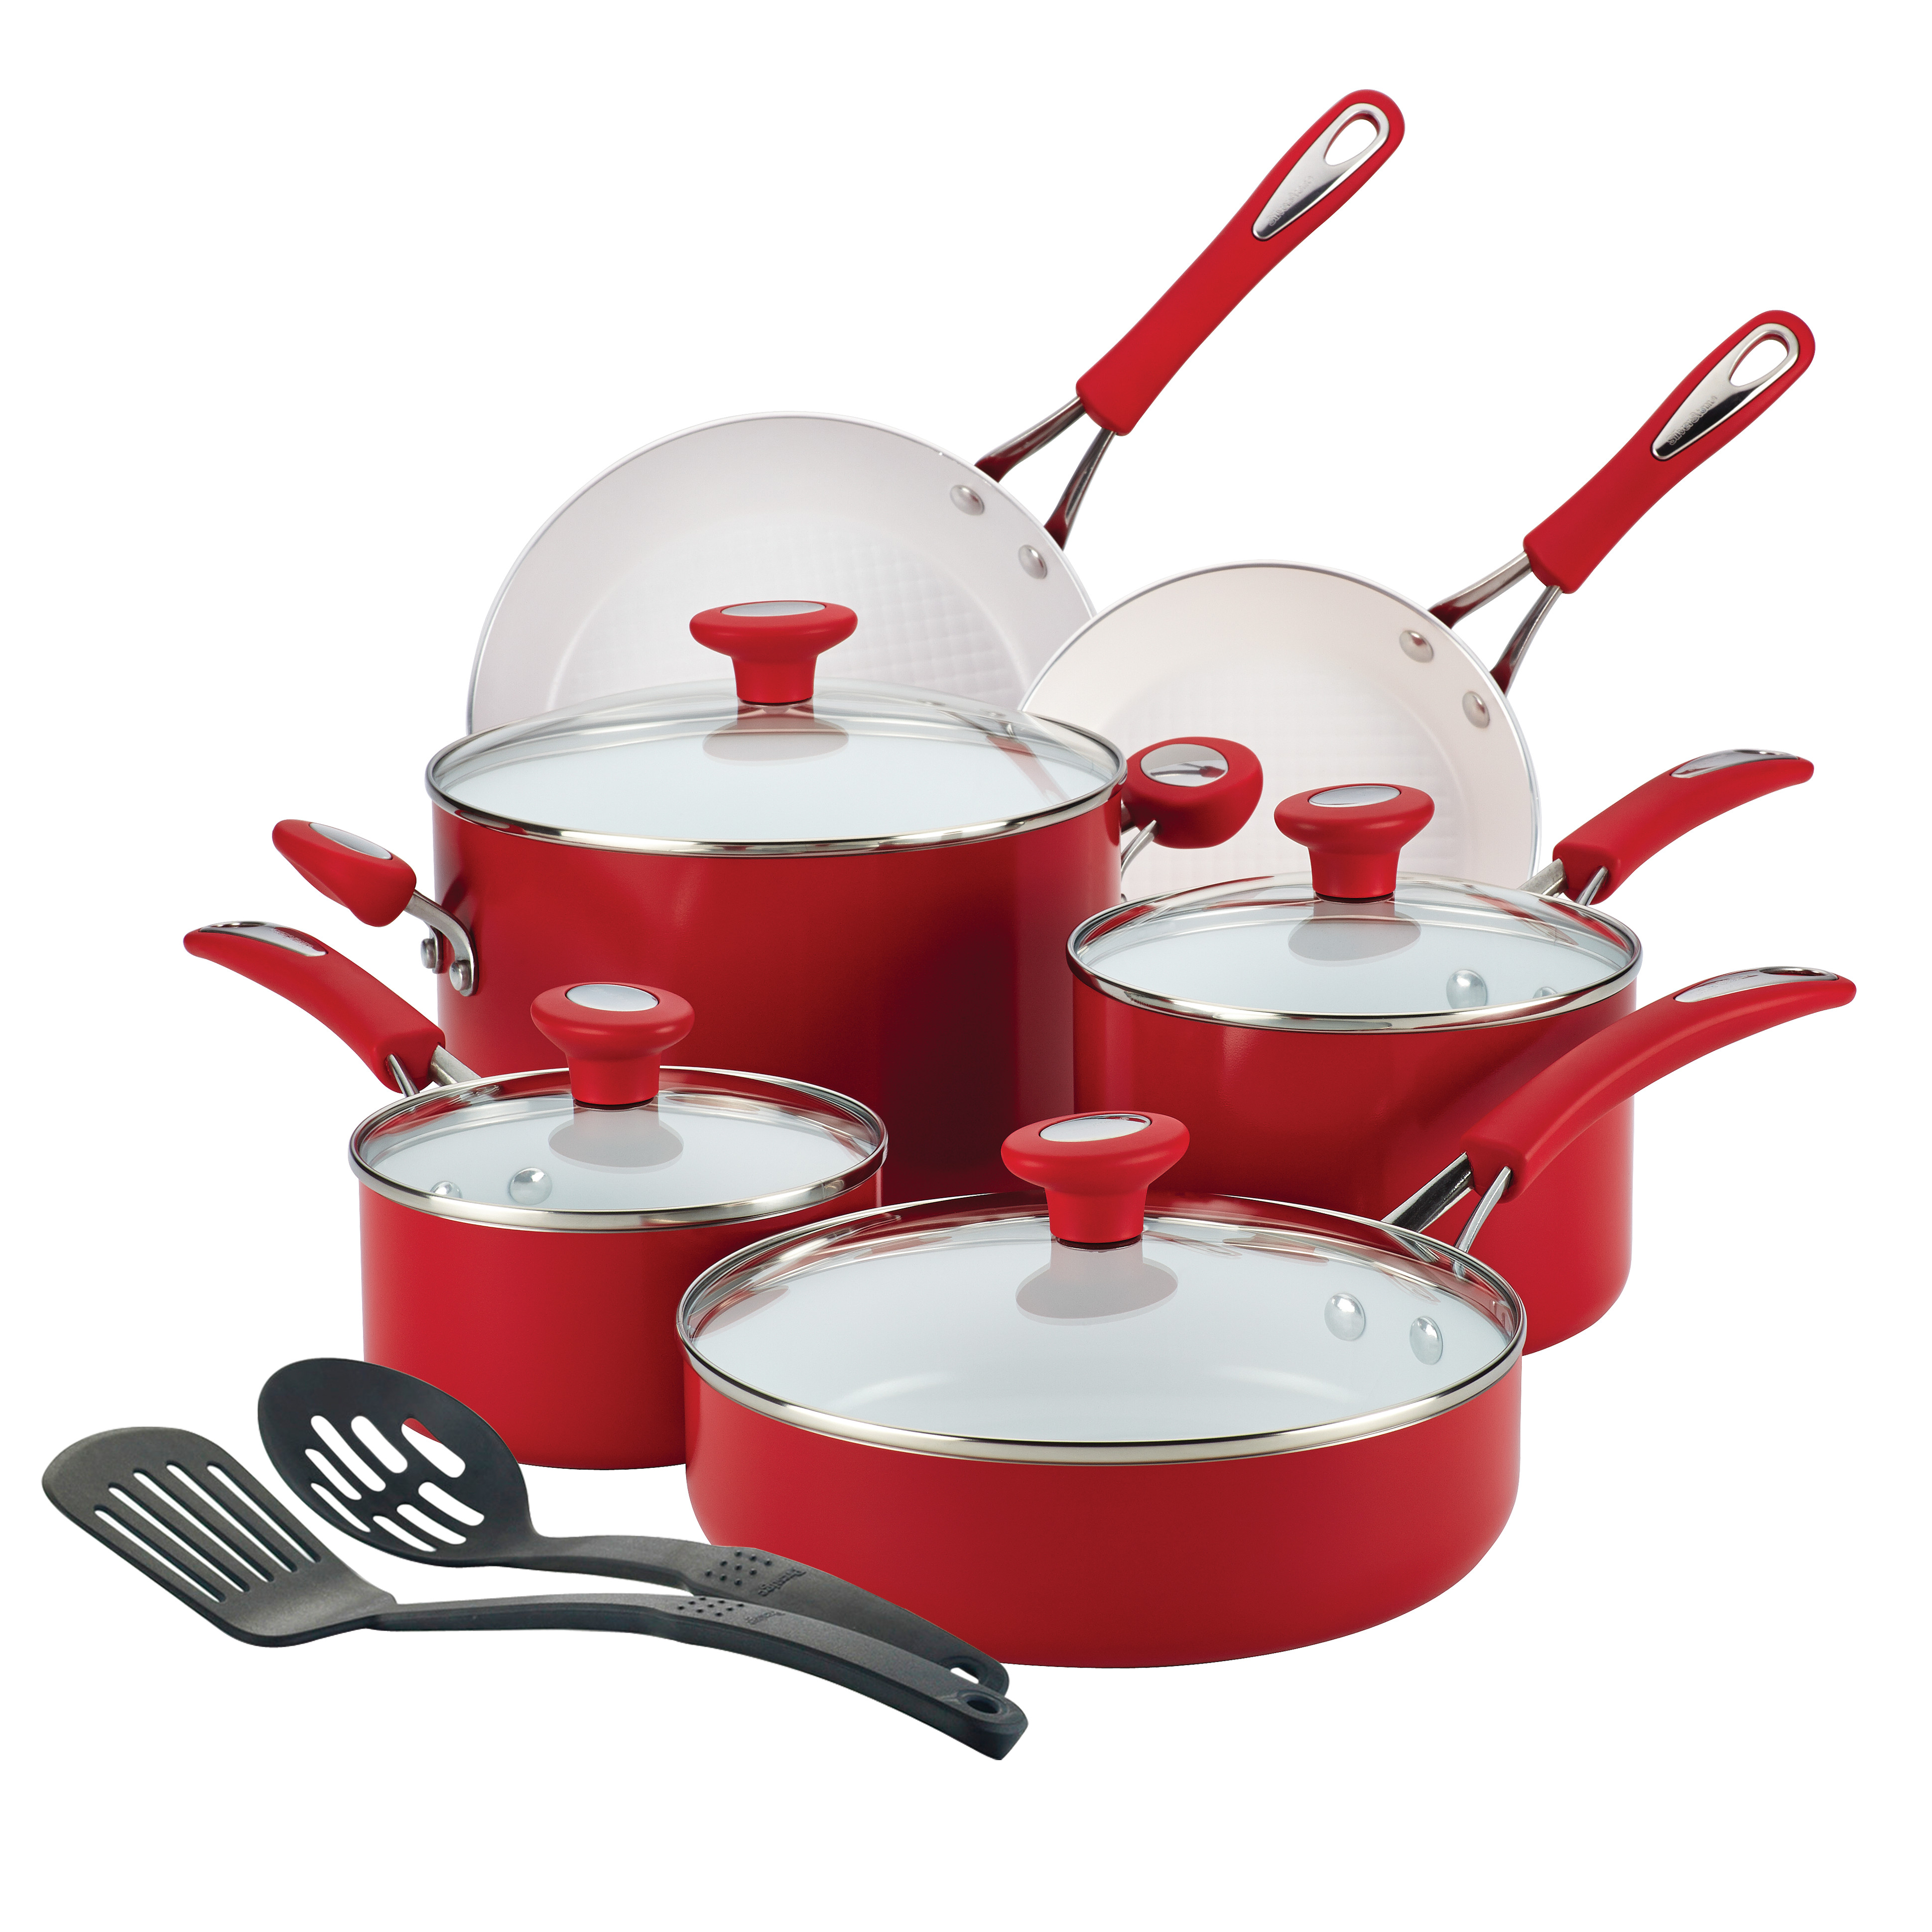 SilverStone(r) Ceramic Nonstick Aluminum Cookware Set, 12-Piece, Chili Red, CXi Collection